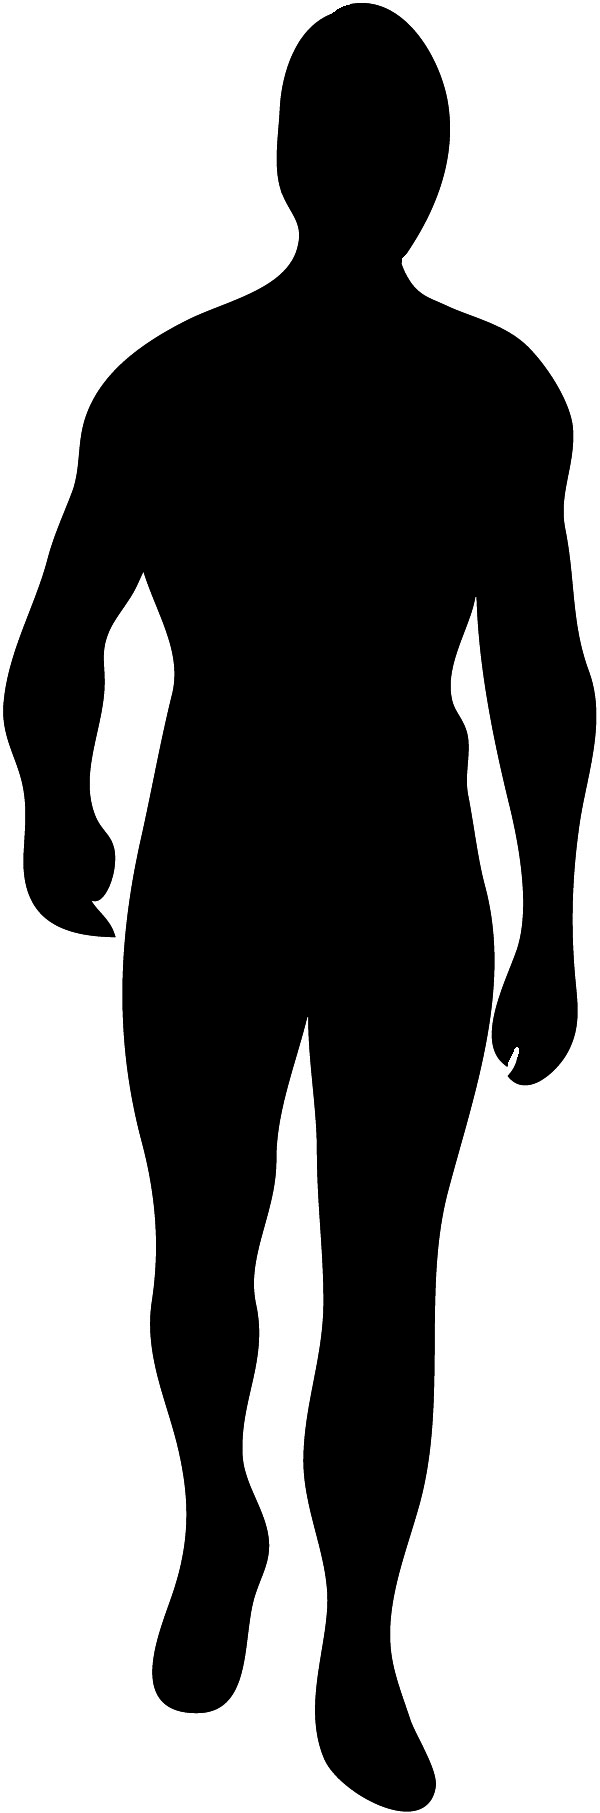 Body silhouette images.